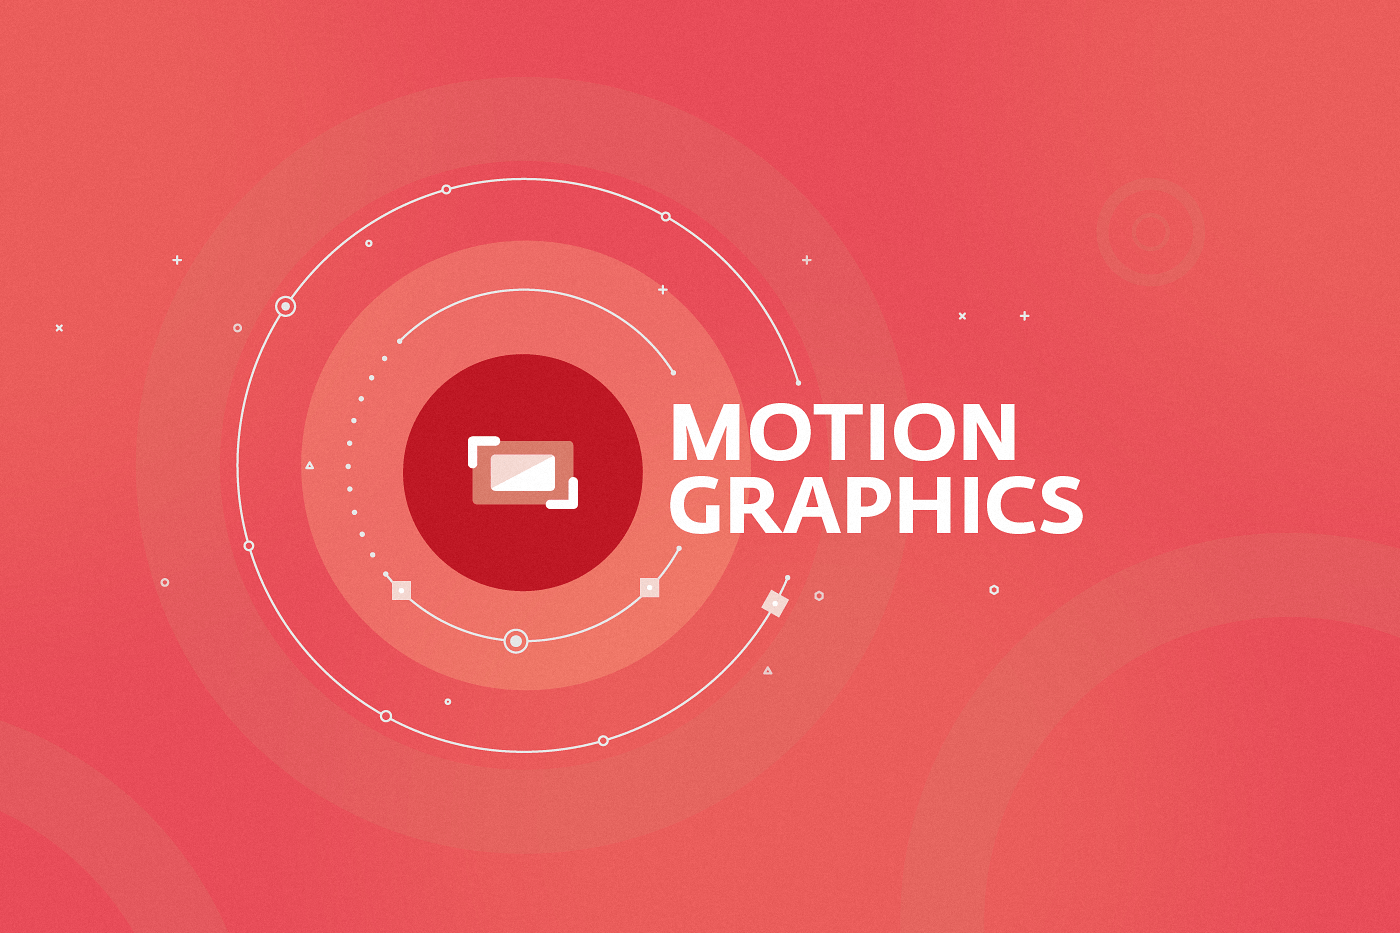 motiongraphics - Three Tech Labs in cooperation with Beeline Armenia